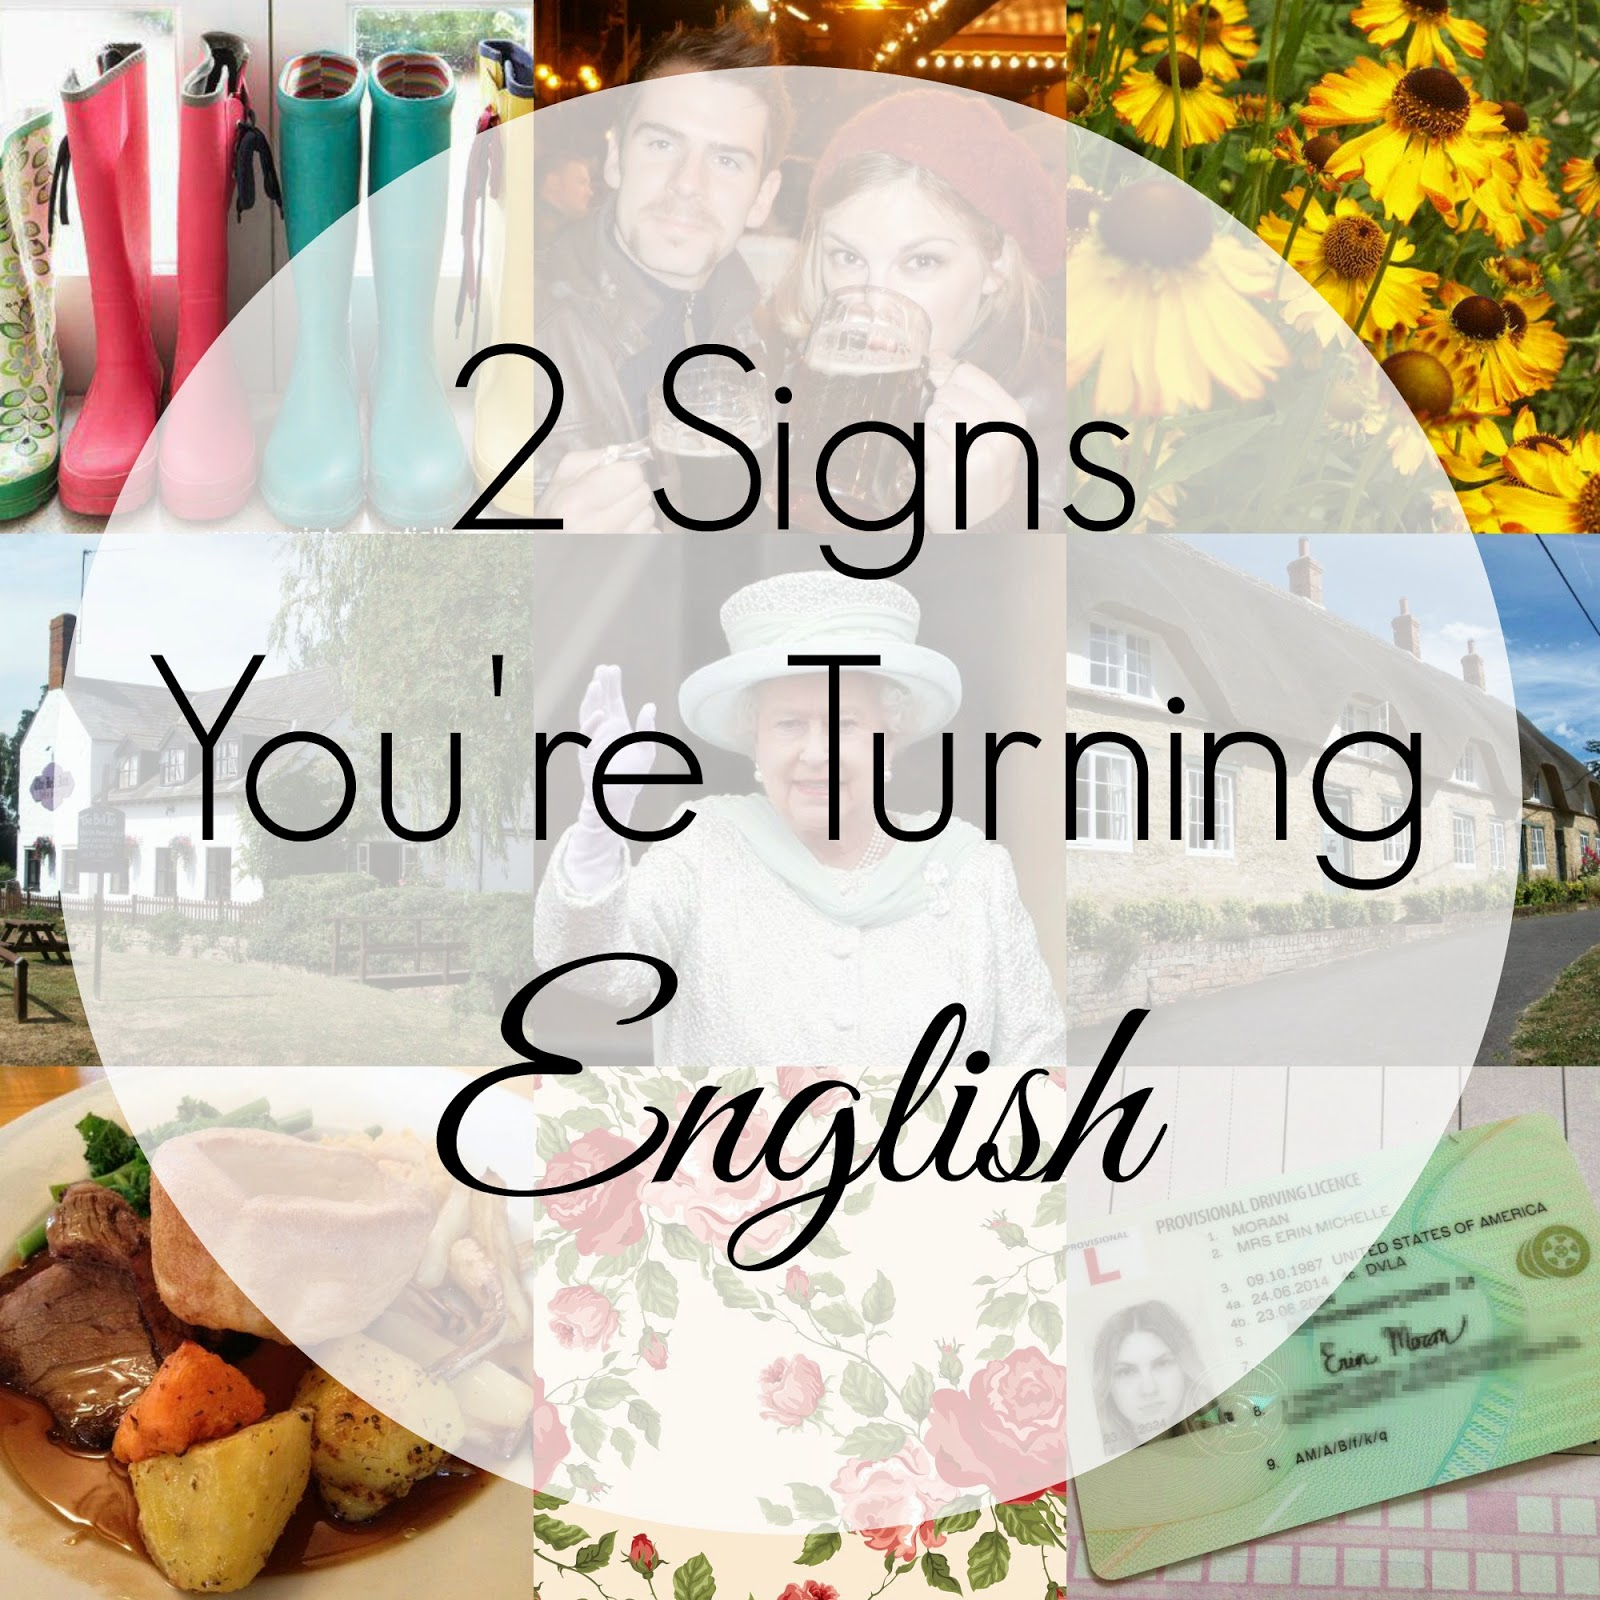 2 Signs You're Turning English